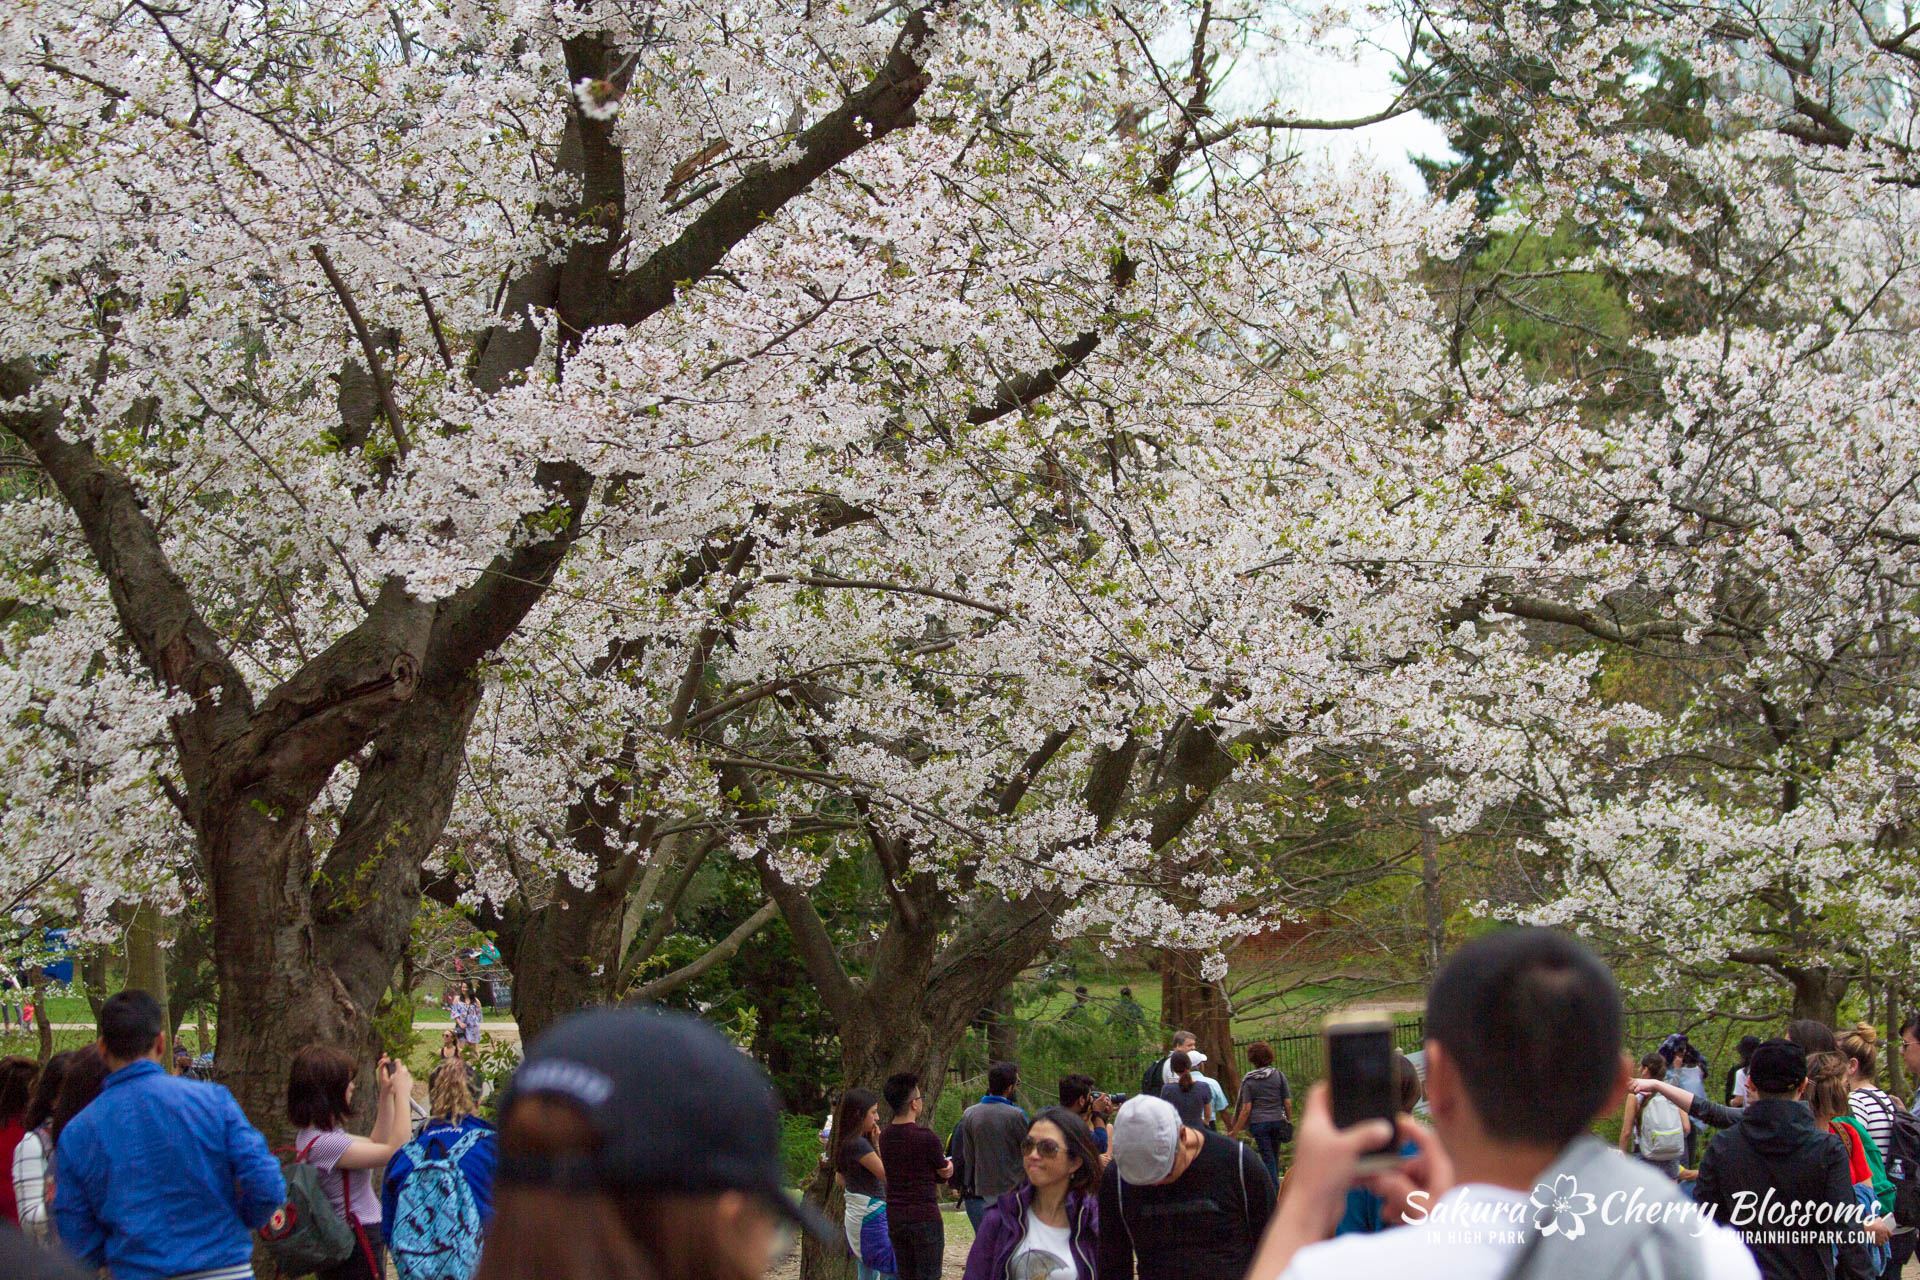 latest bloom predictions - Want to know my latest bloom predictions? I'll tell you the stage of the trees in High Park plus where in the park and when will be the best time to see the cherry blossoms.